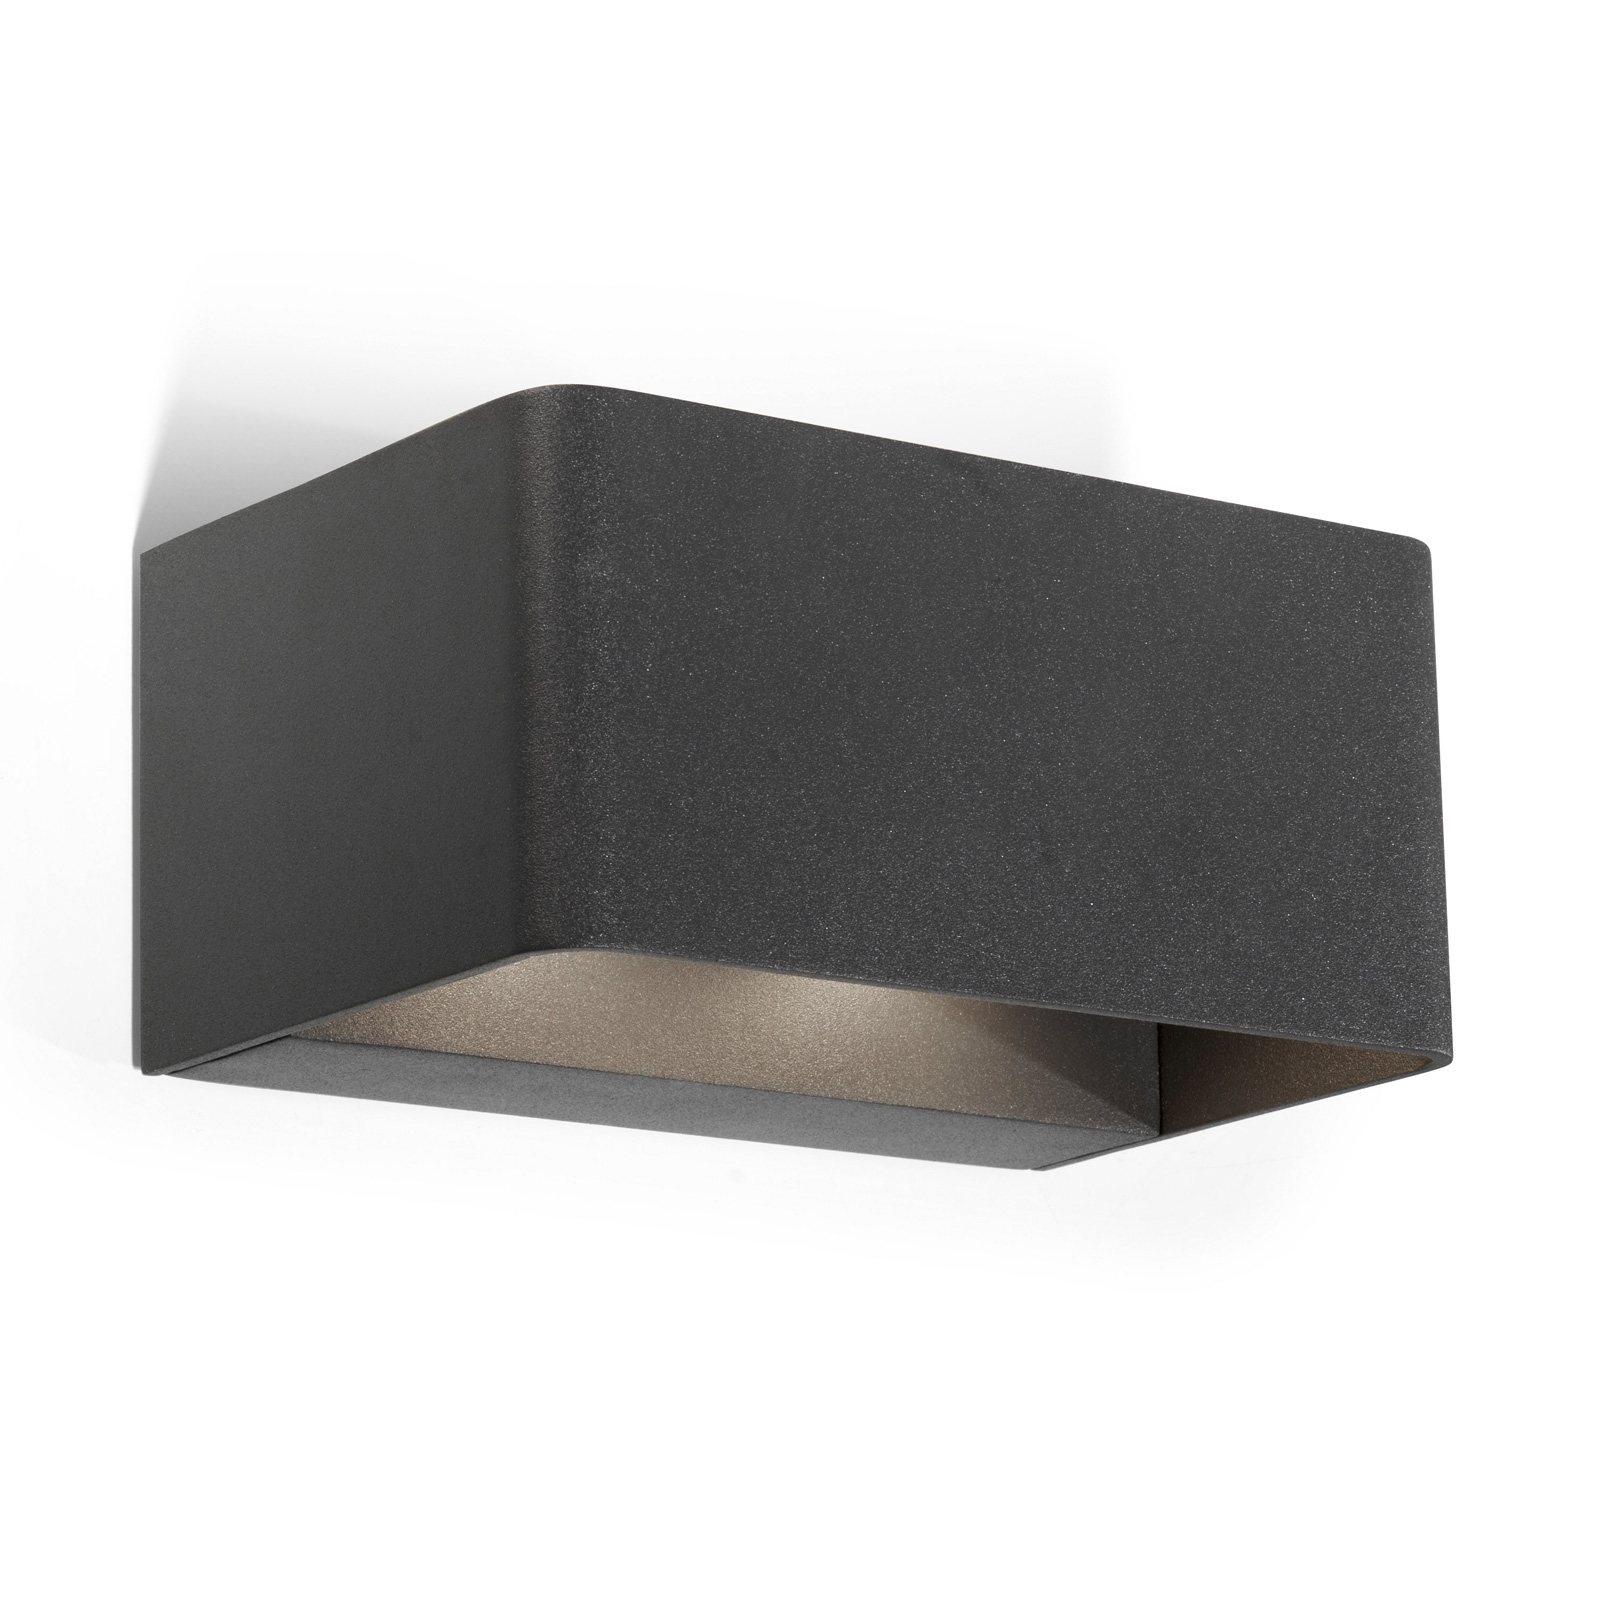 LEDS-C4 Wilson applique ext. LED, 19 cm anthracite